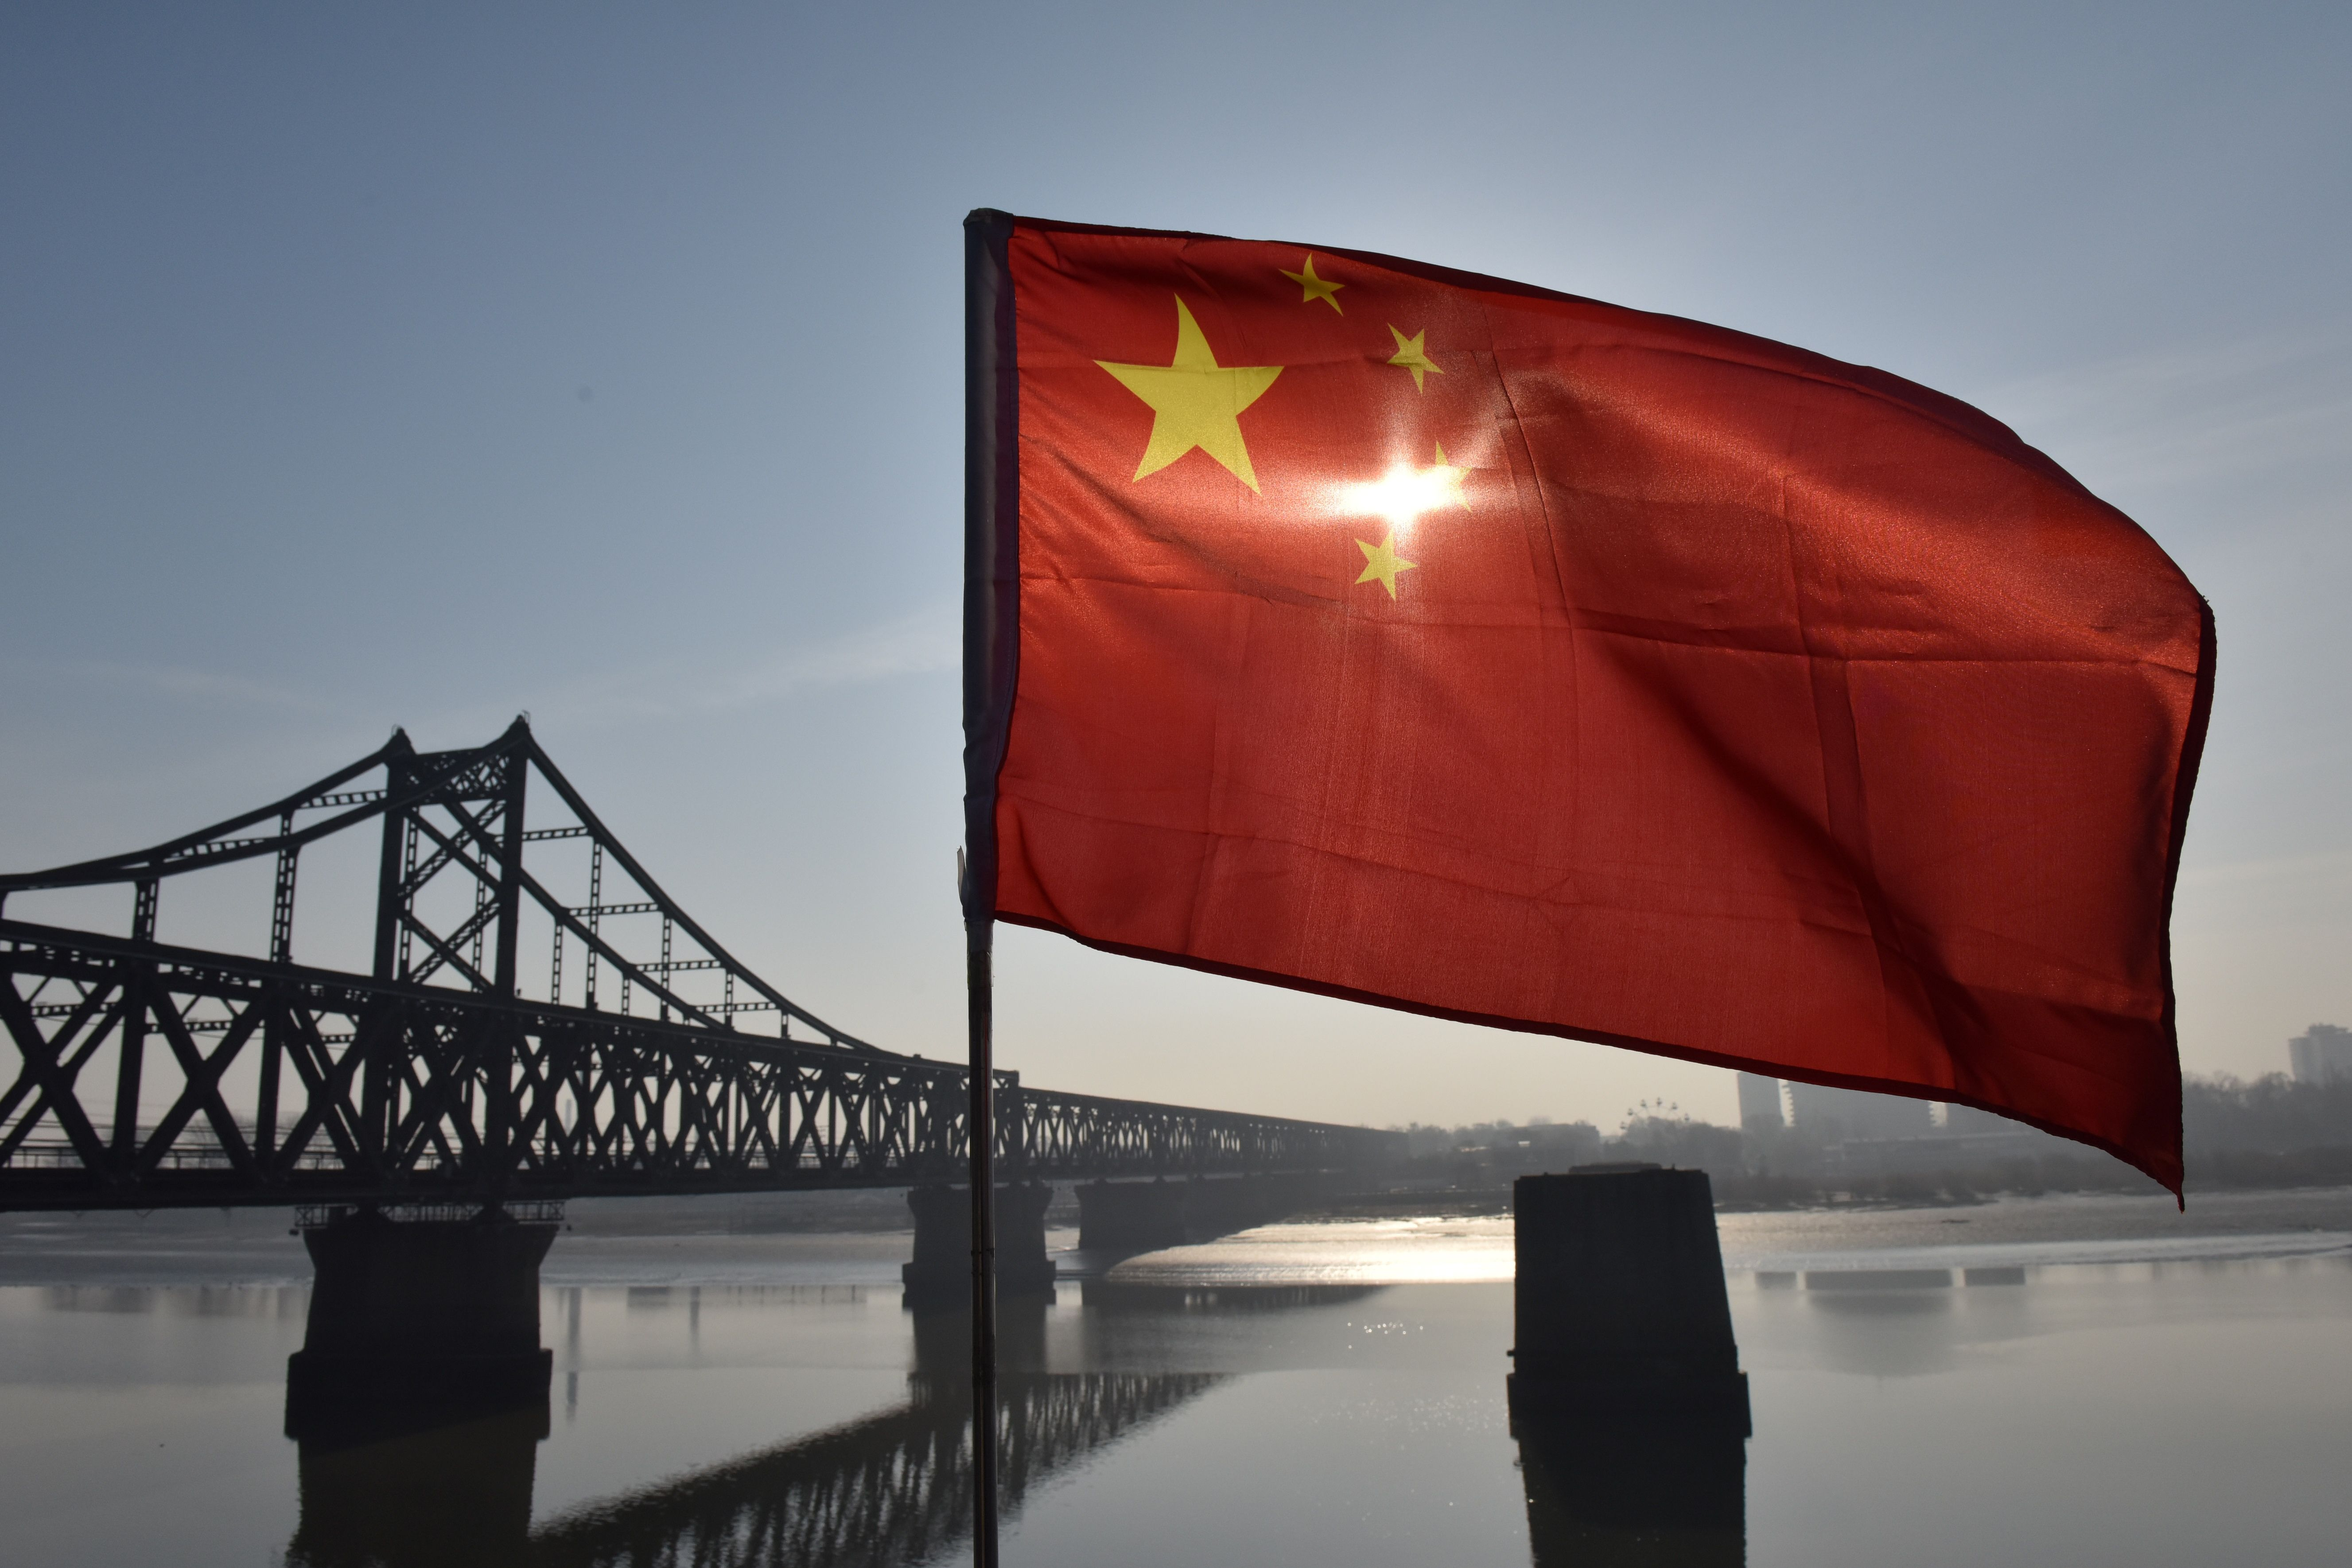 The Chinese flag flies on the Yalu River Broken Bridge, with the Sino-Korean Friendship Bridge, and the North Korean city of Sinuiju behind it, in the Chinese city of Dandong on February 23, 2019.